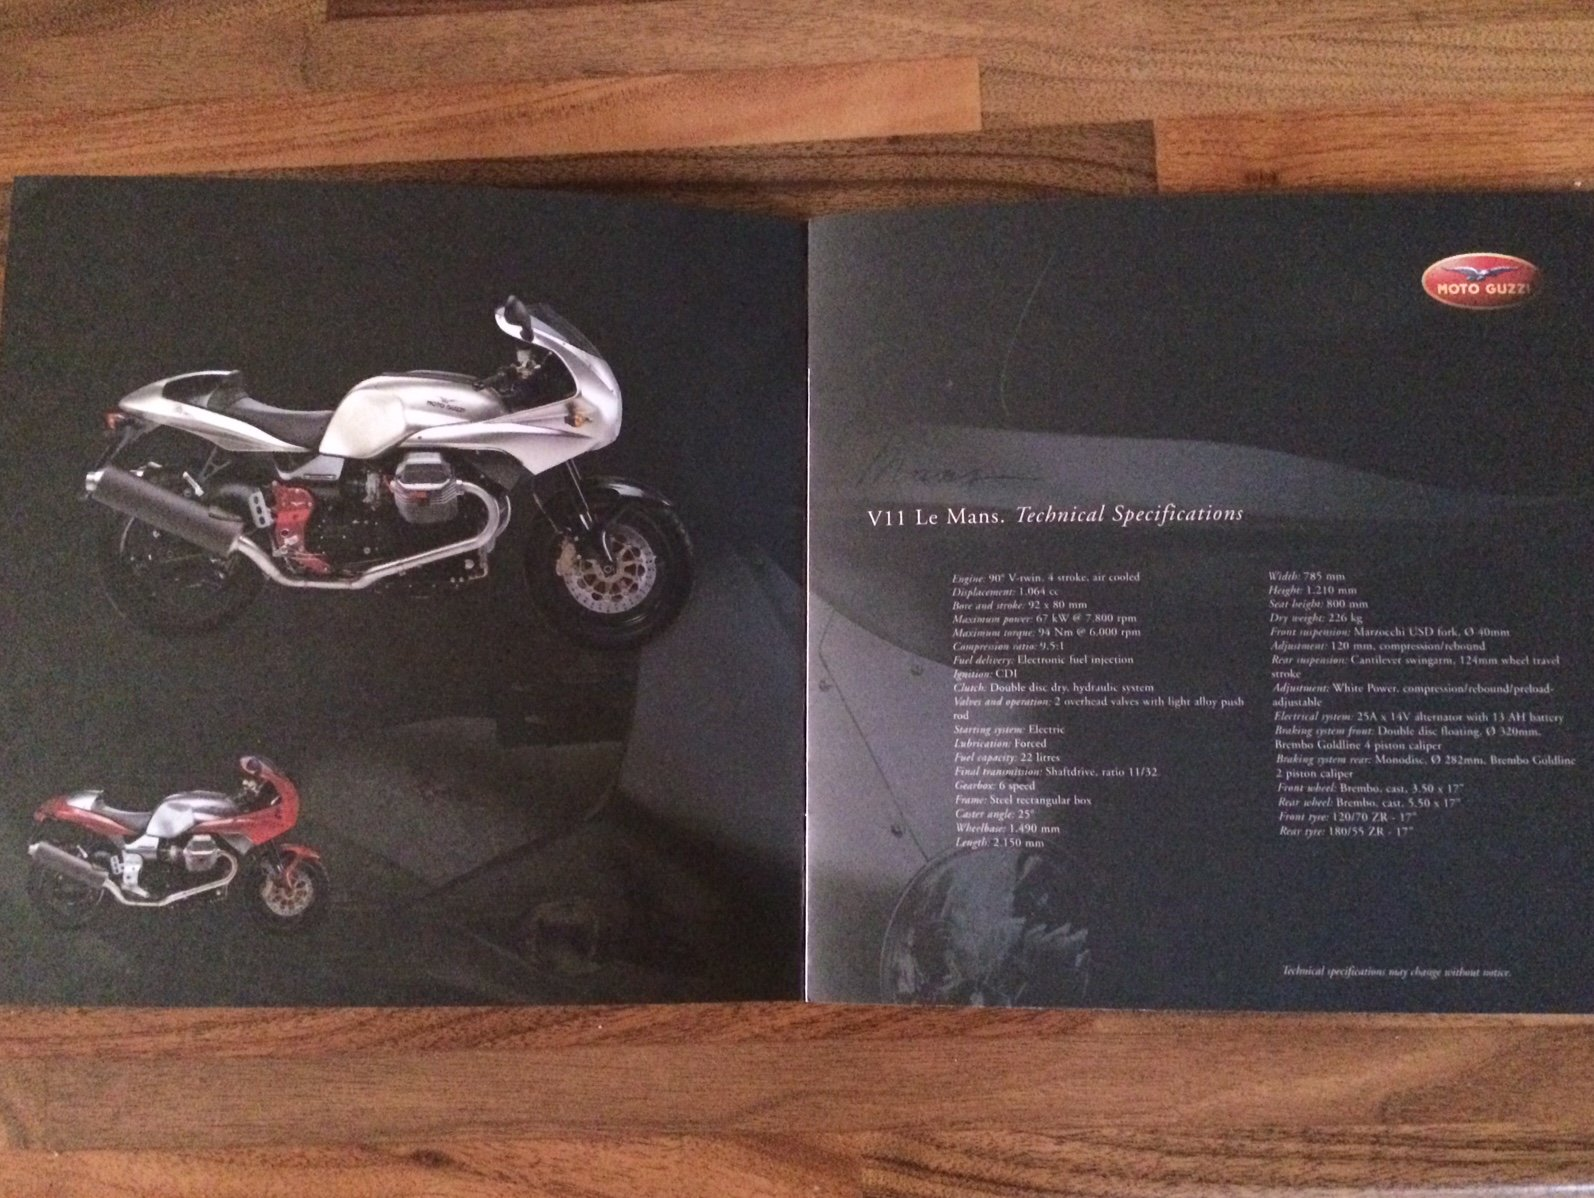 Moto Guzzi Collection 2001 brochure For Sale (picture 4 of 9)